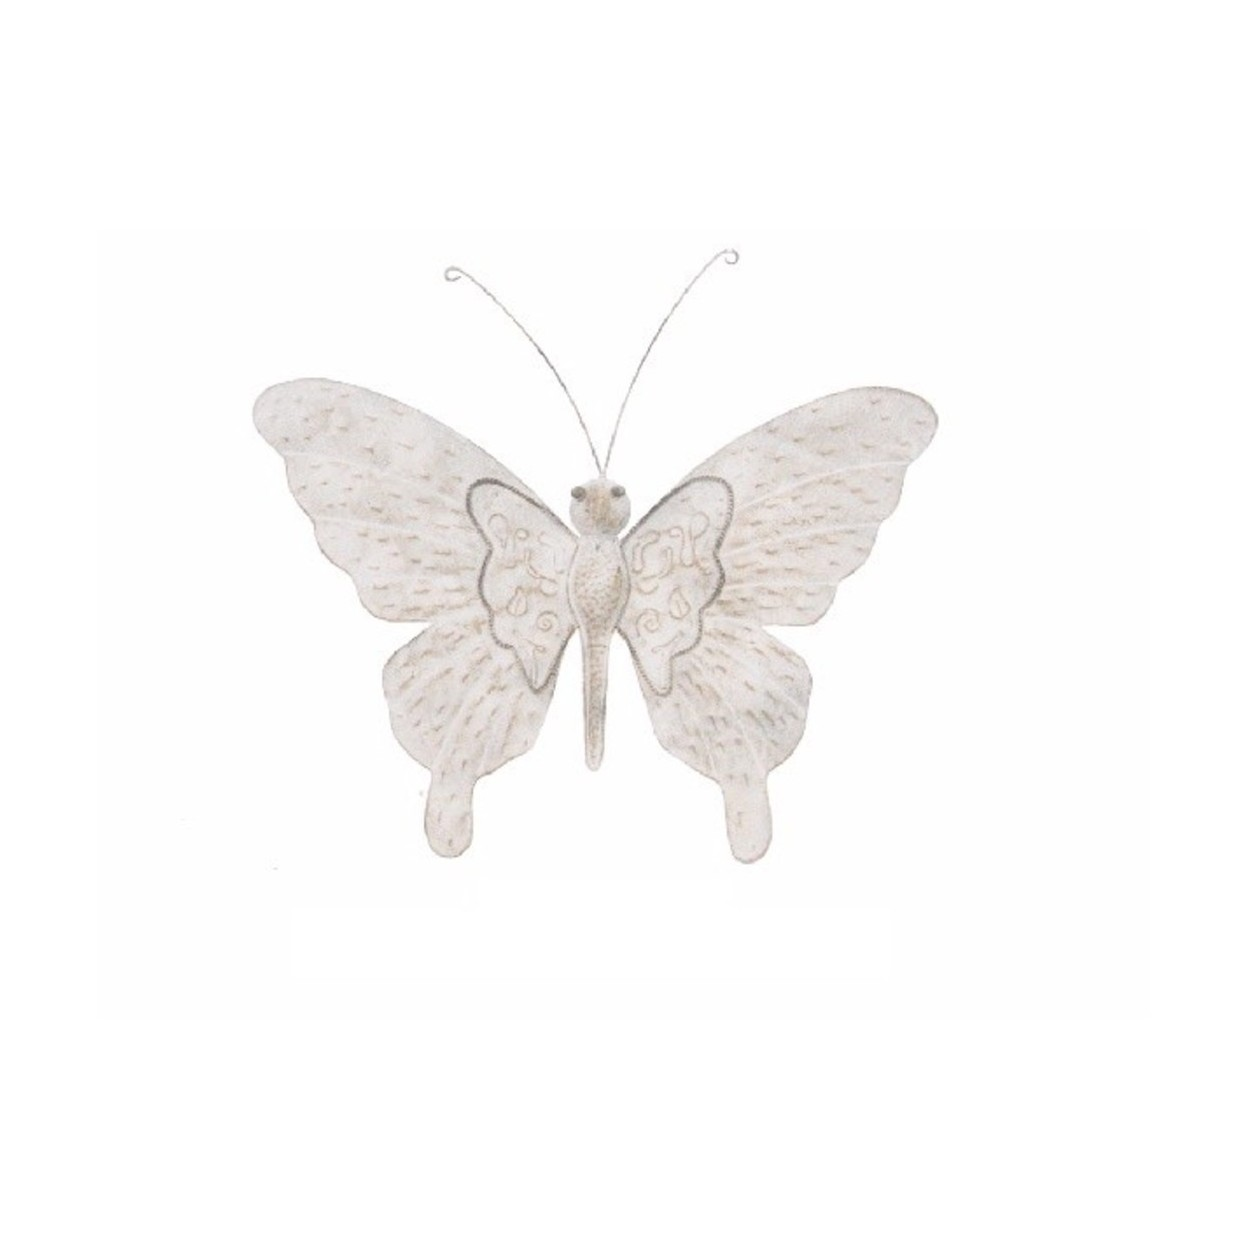 Figura mariposa de metal decoraci n de pared 55x46x3 cm for Figuras de metal para decorar paredes